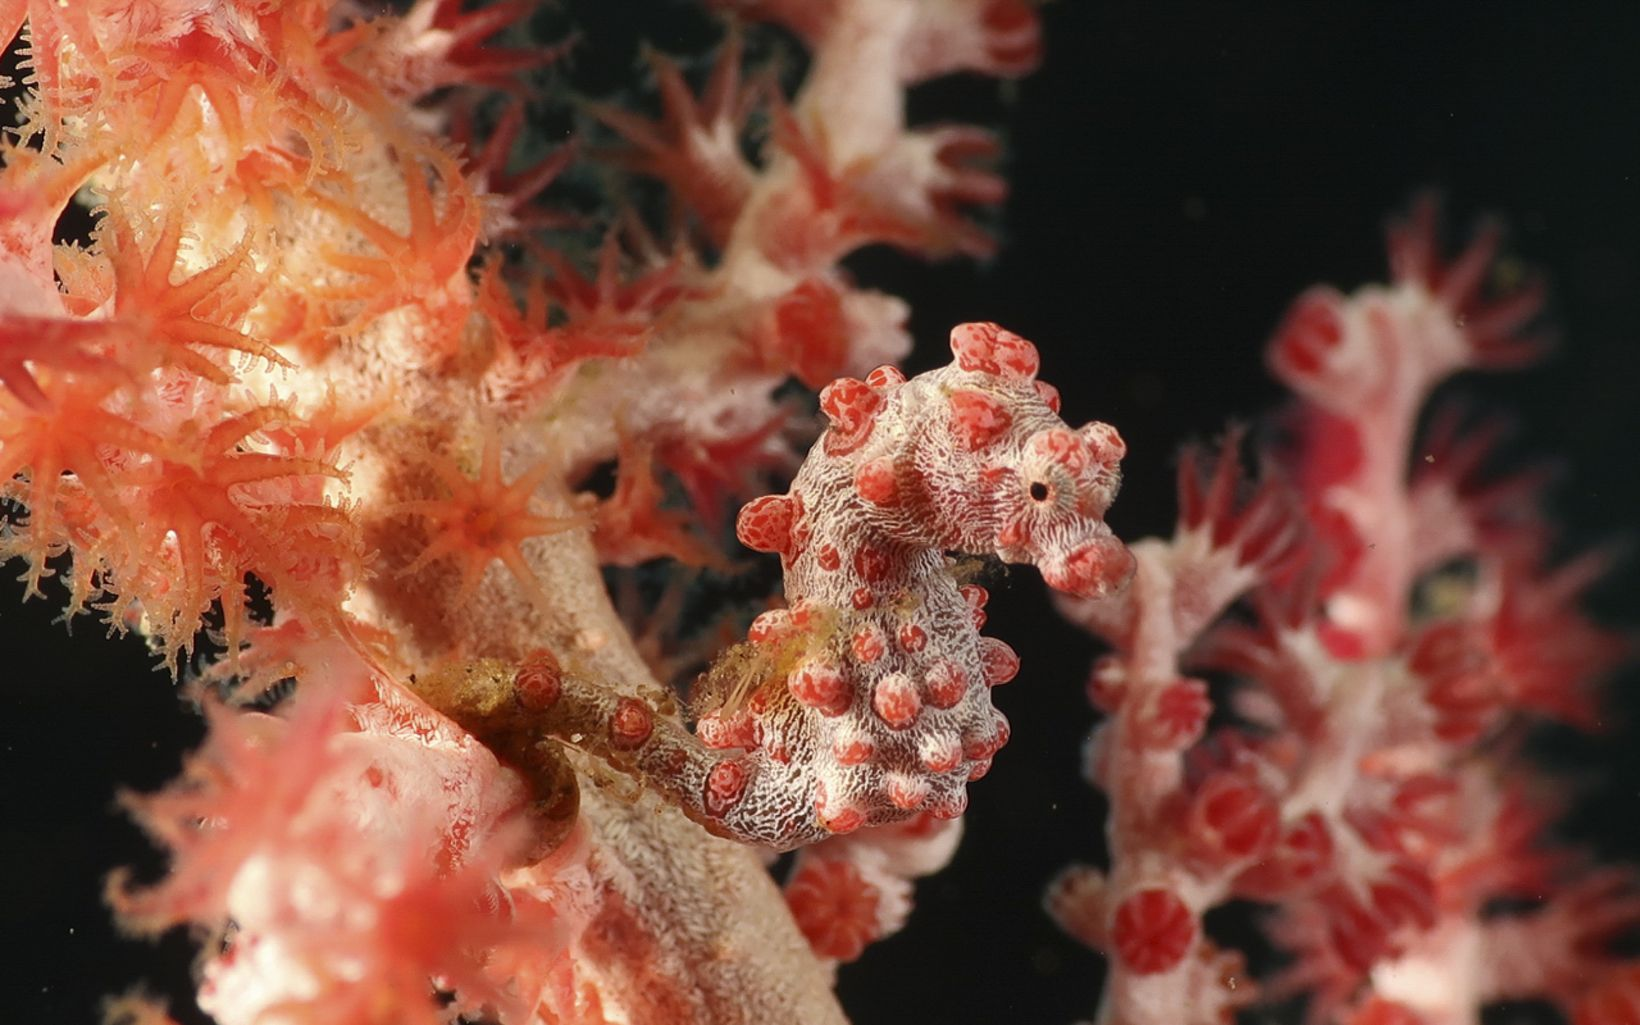 A tiny coral and white pygmy seahorse, photographed on sea fan.